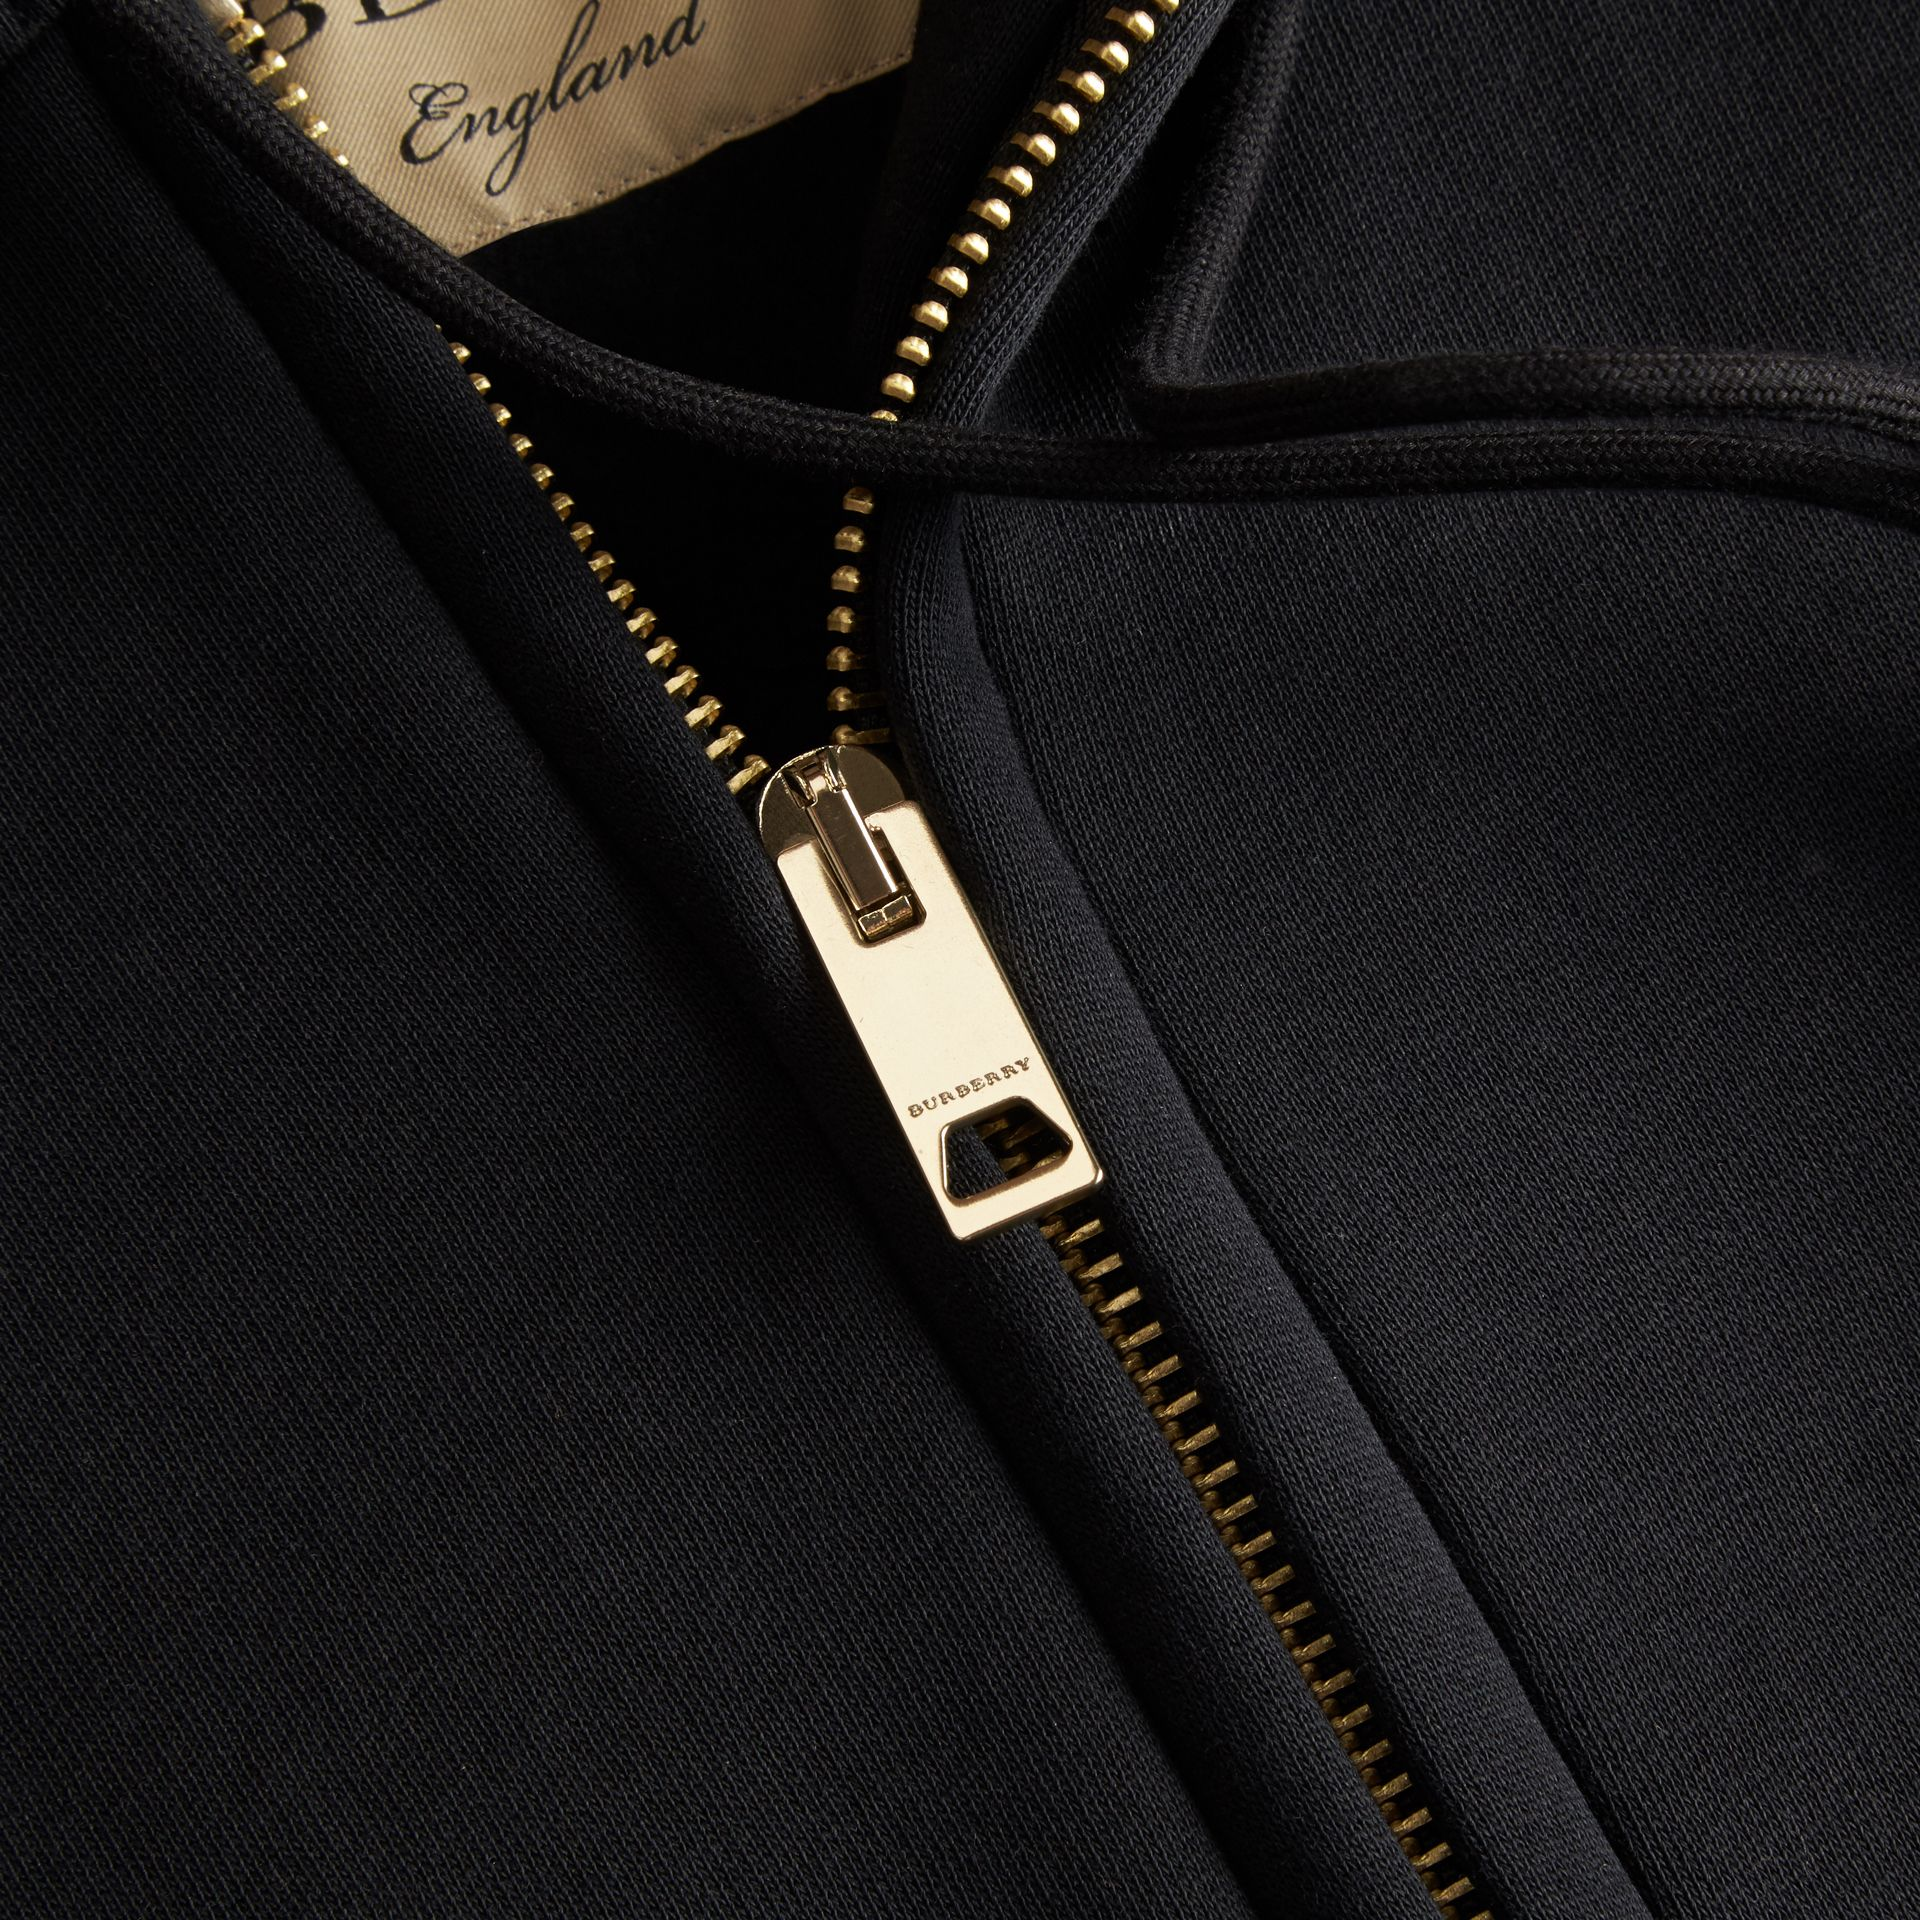 Hooded Zip-front Cotton Blend  Sweatshirt in Black - Women | Burberry Australia - gallery image 2